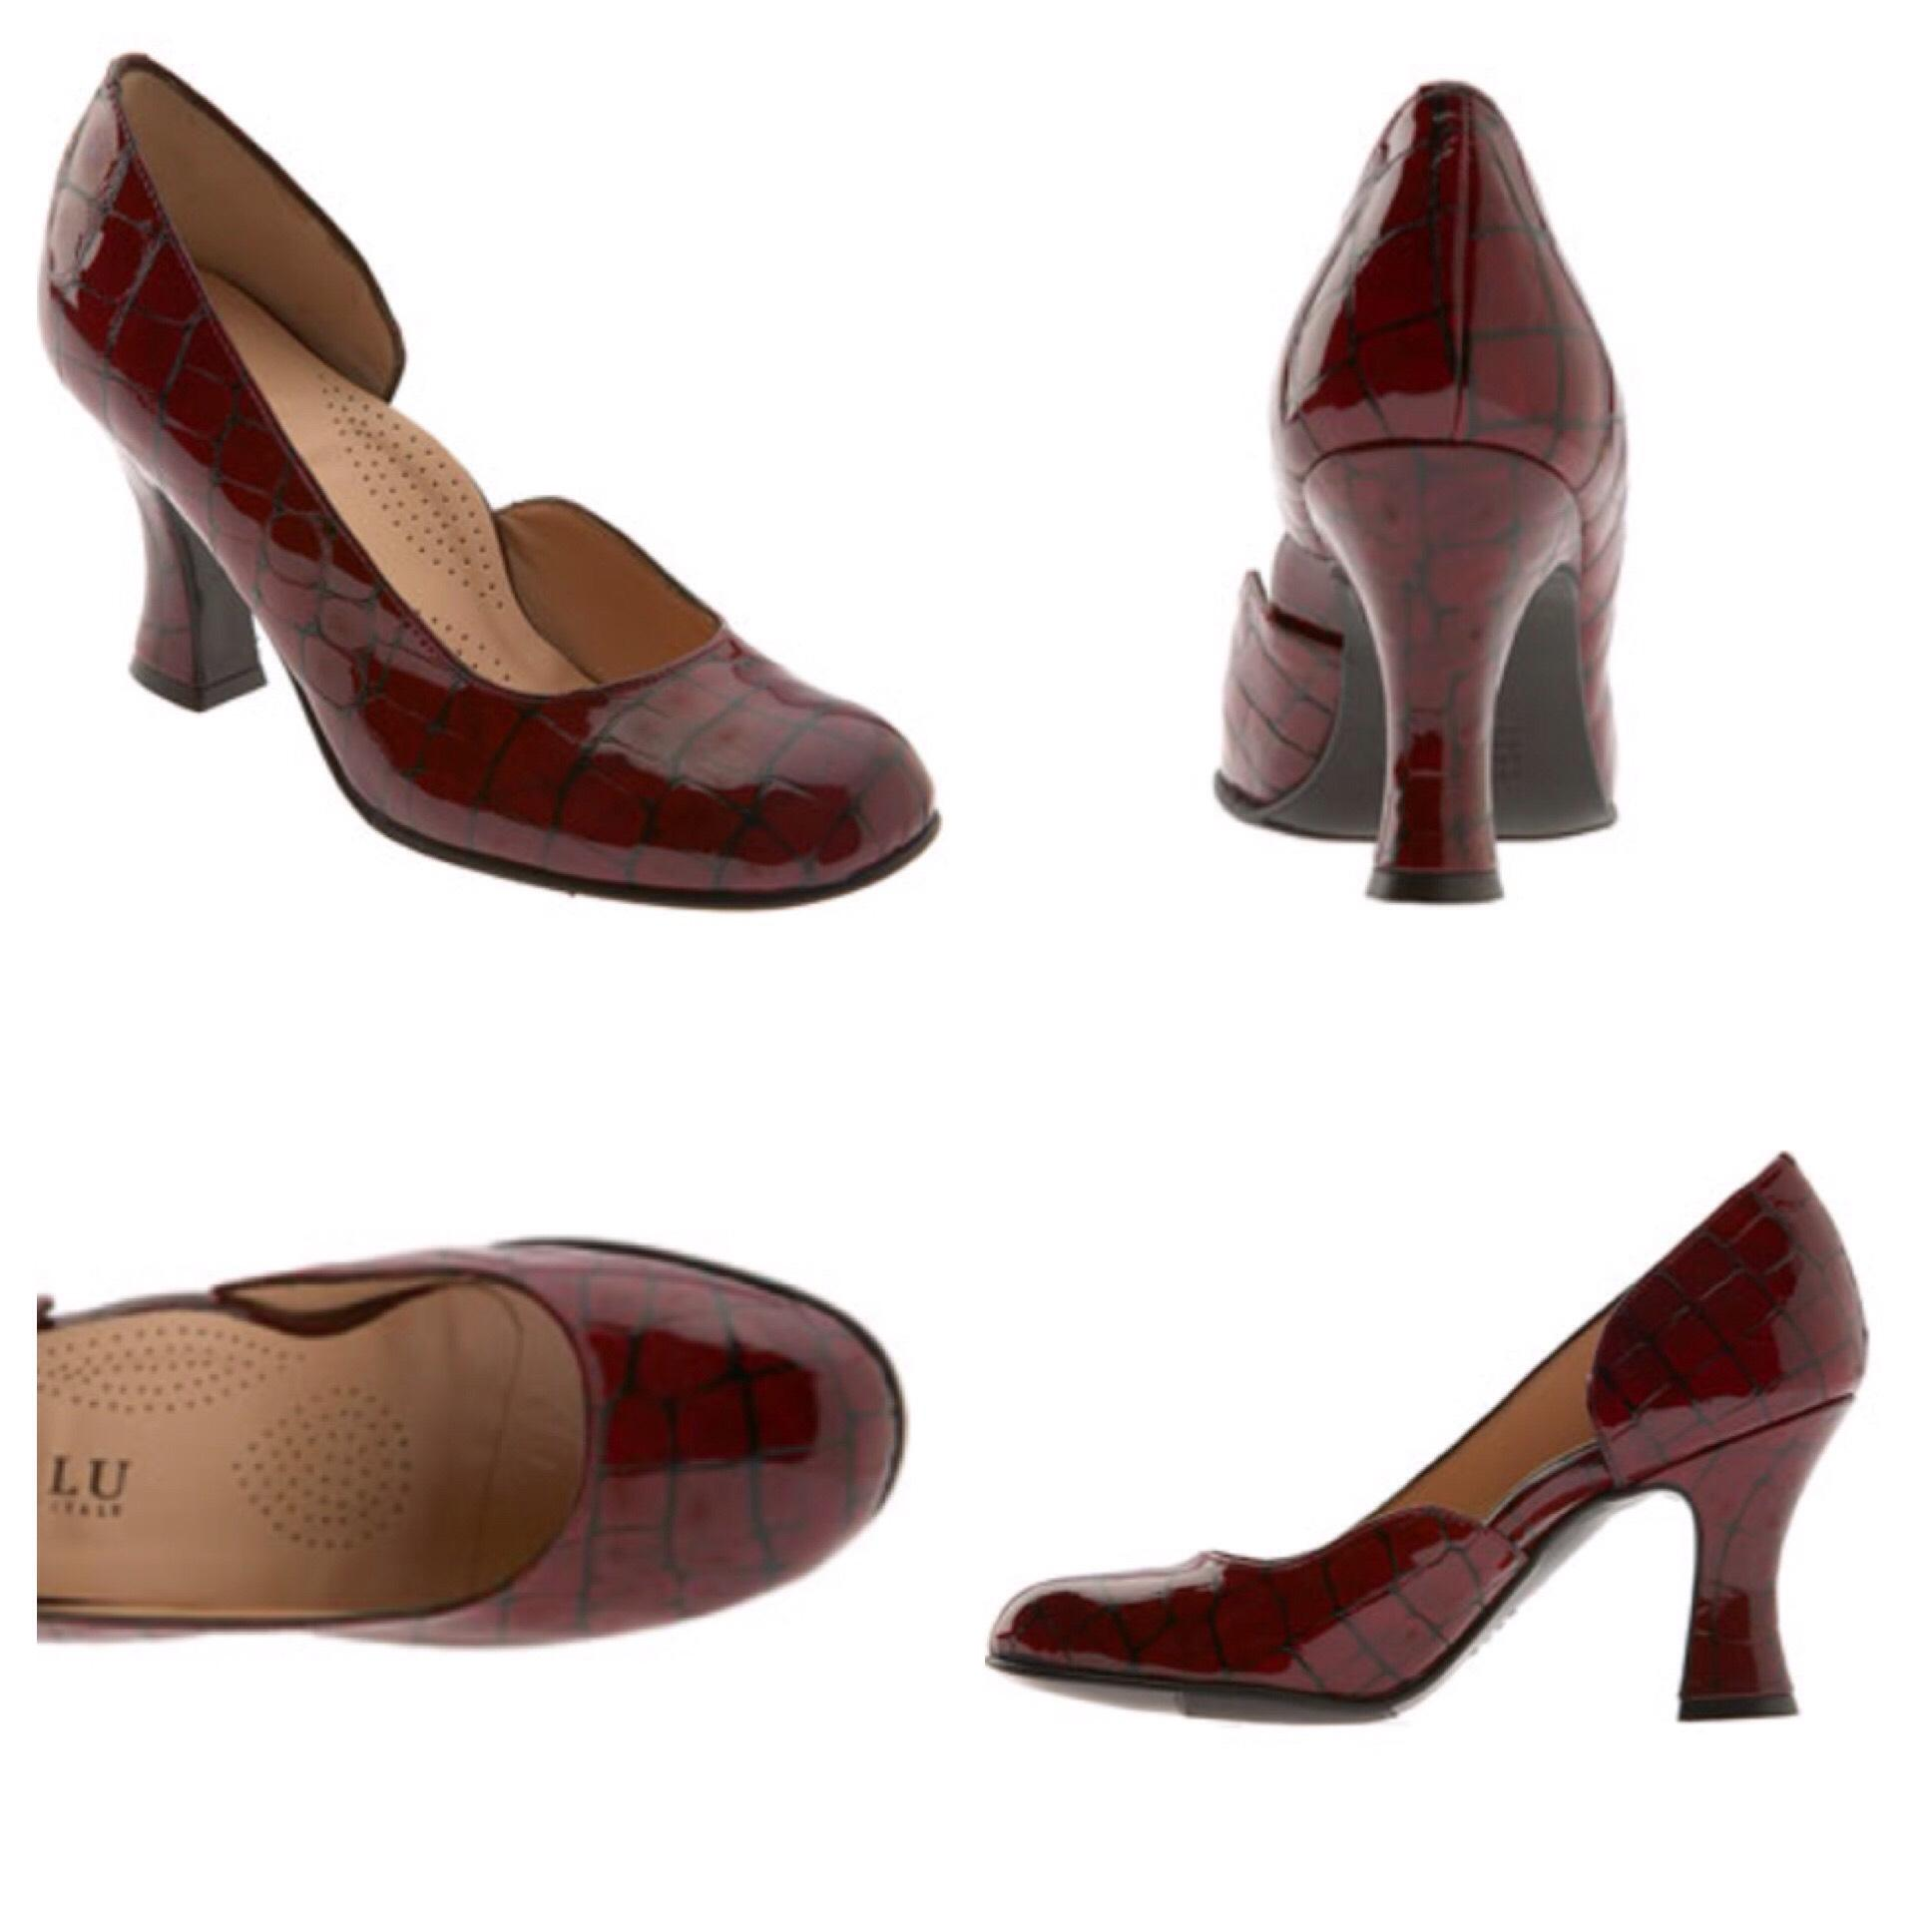 Anyi Lu Patent Leather Round-Toe Pumps free shipping find great best seller online yVTYujzaY